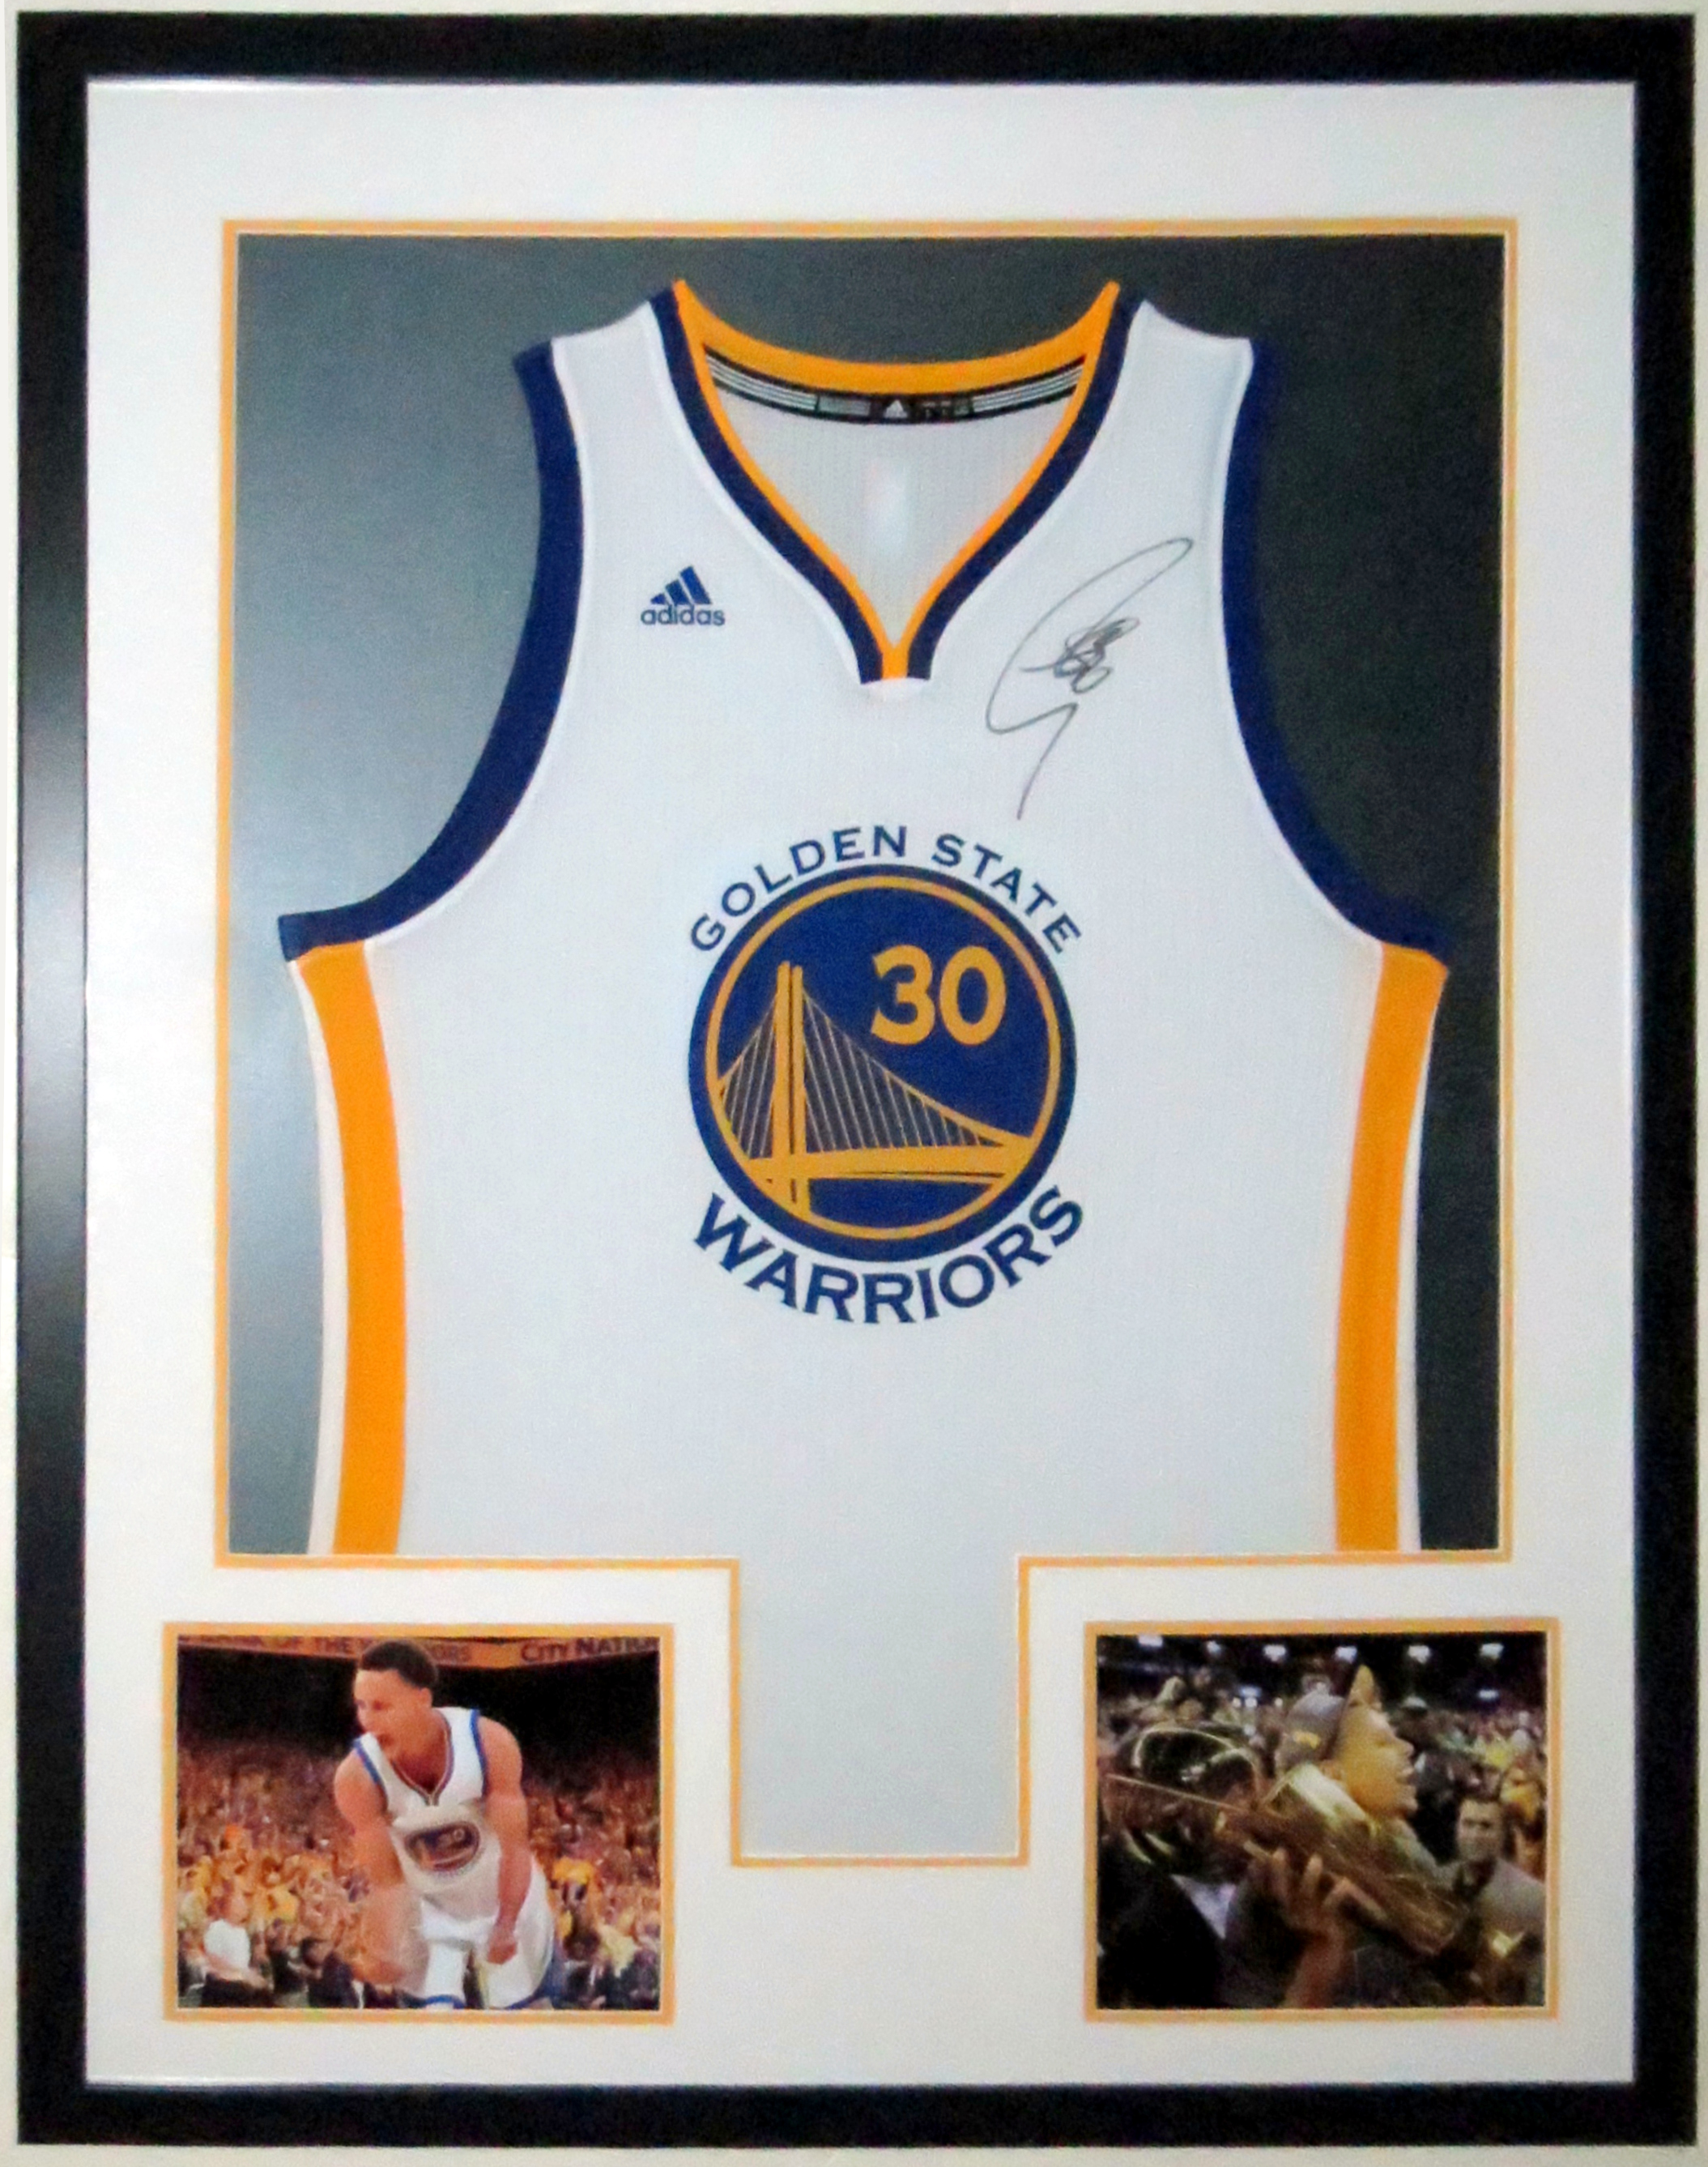 Stephen Curry Autographed Golden State Warriors Jersey - PSA DNA COA Authenticated -  Professionally Framed & NBA Finals 8x10 Photo 34x42